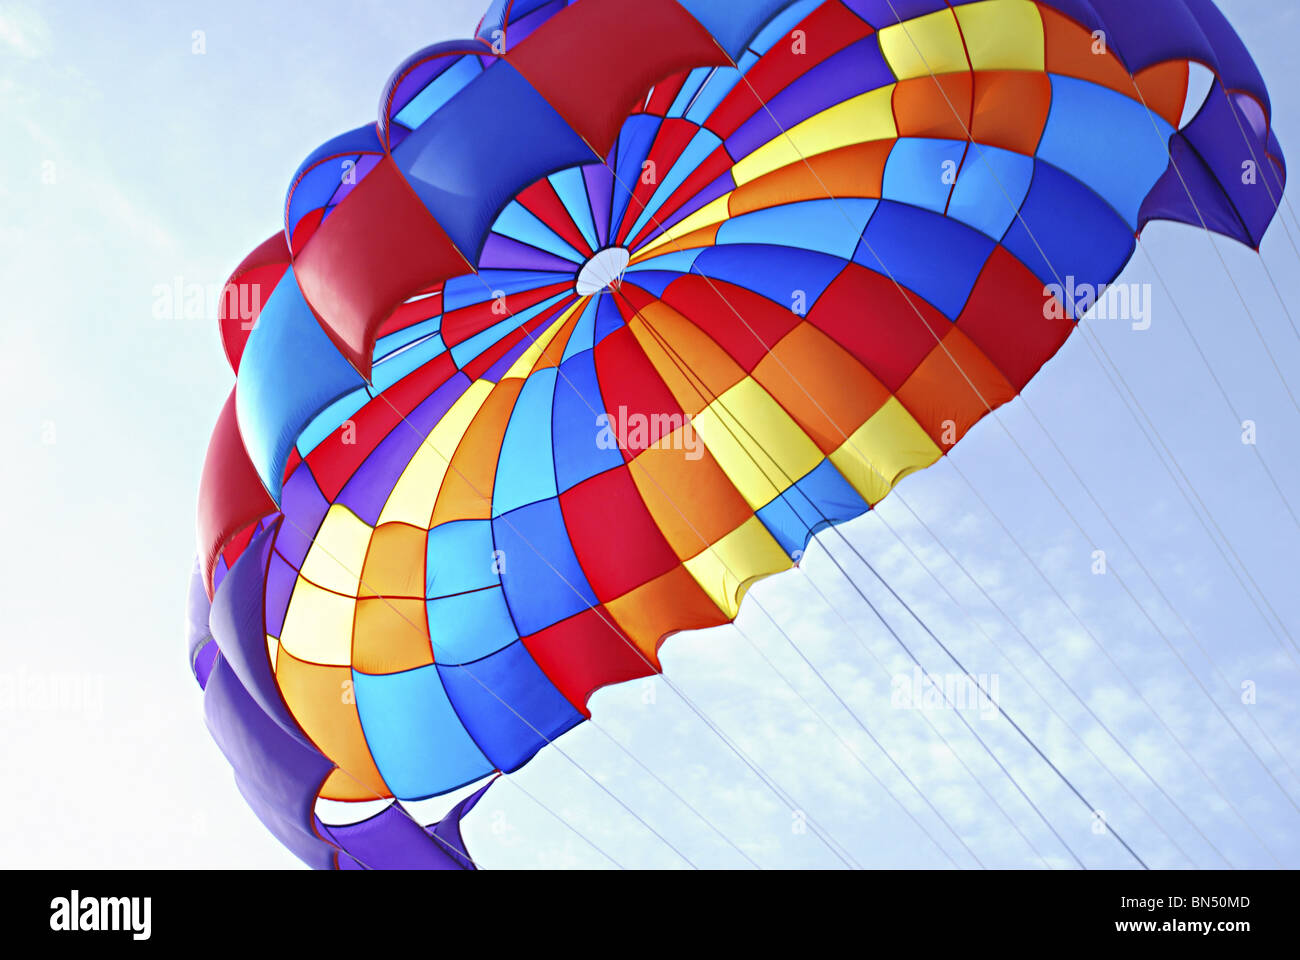 A close up of Parasailing umbrella - Stock Image